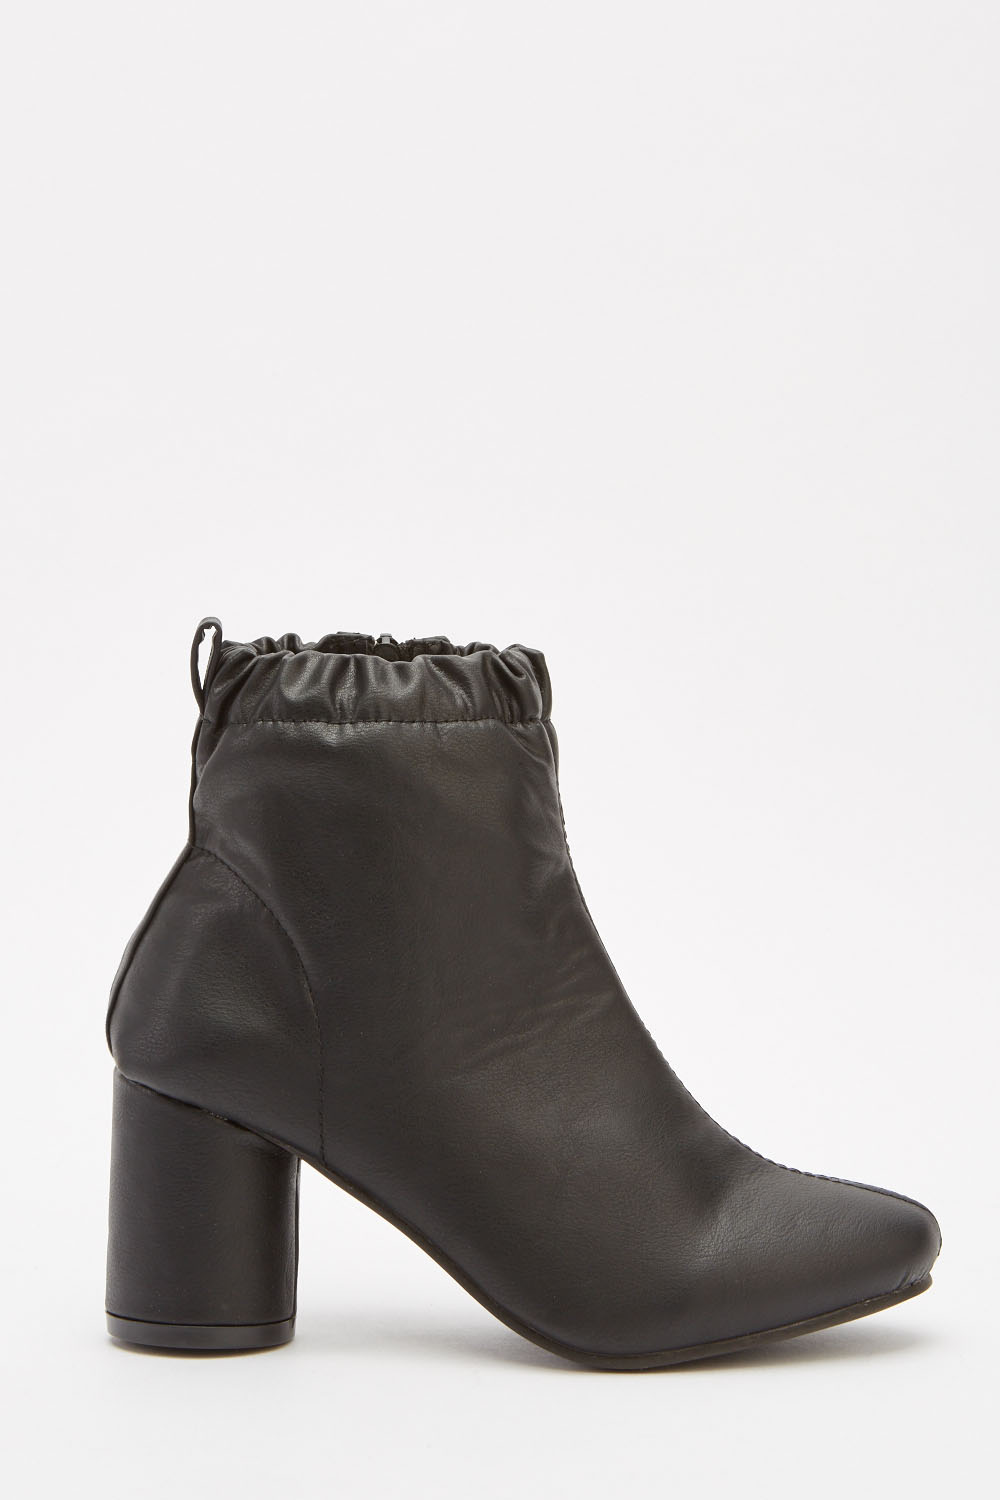 56847c895c13 Faux Leather Ankle Boots - Black - Just £5